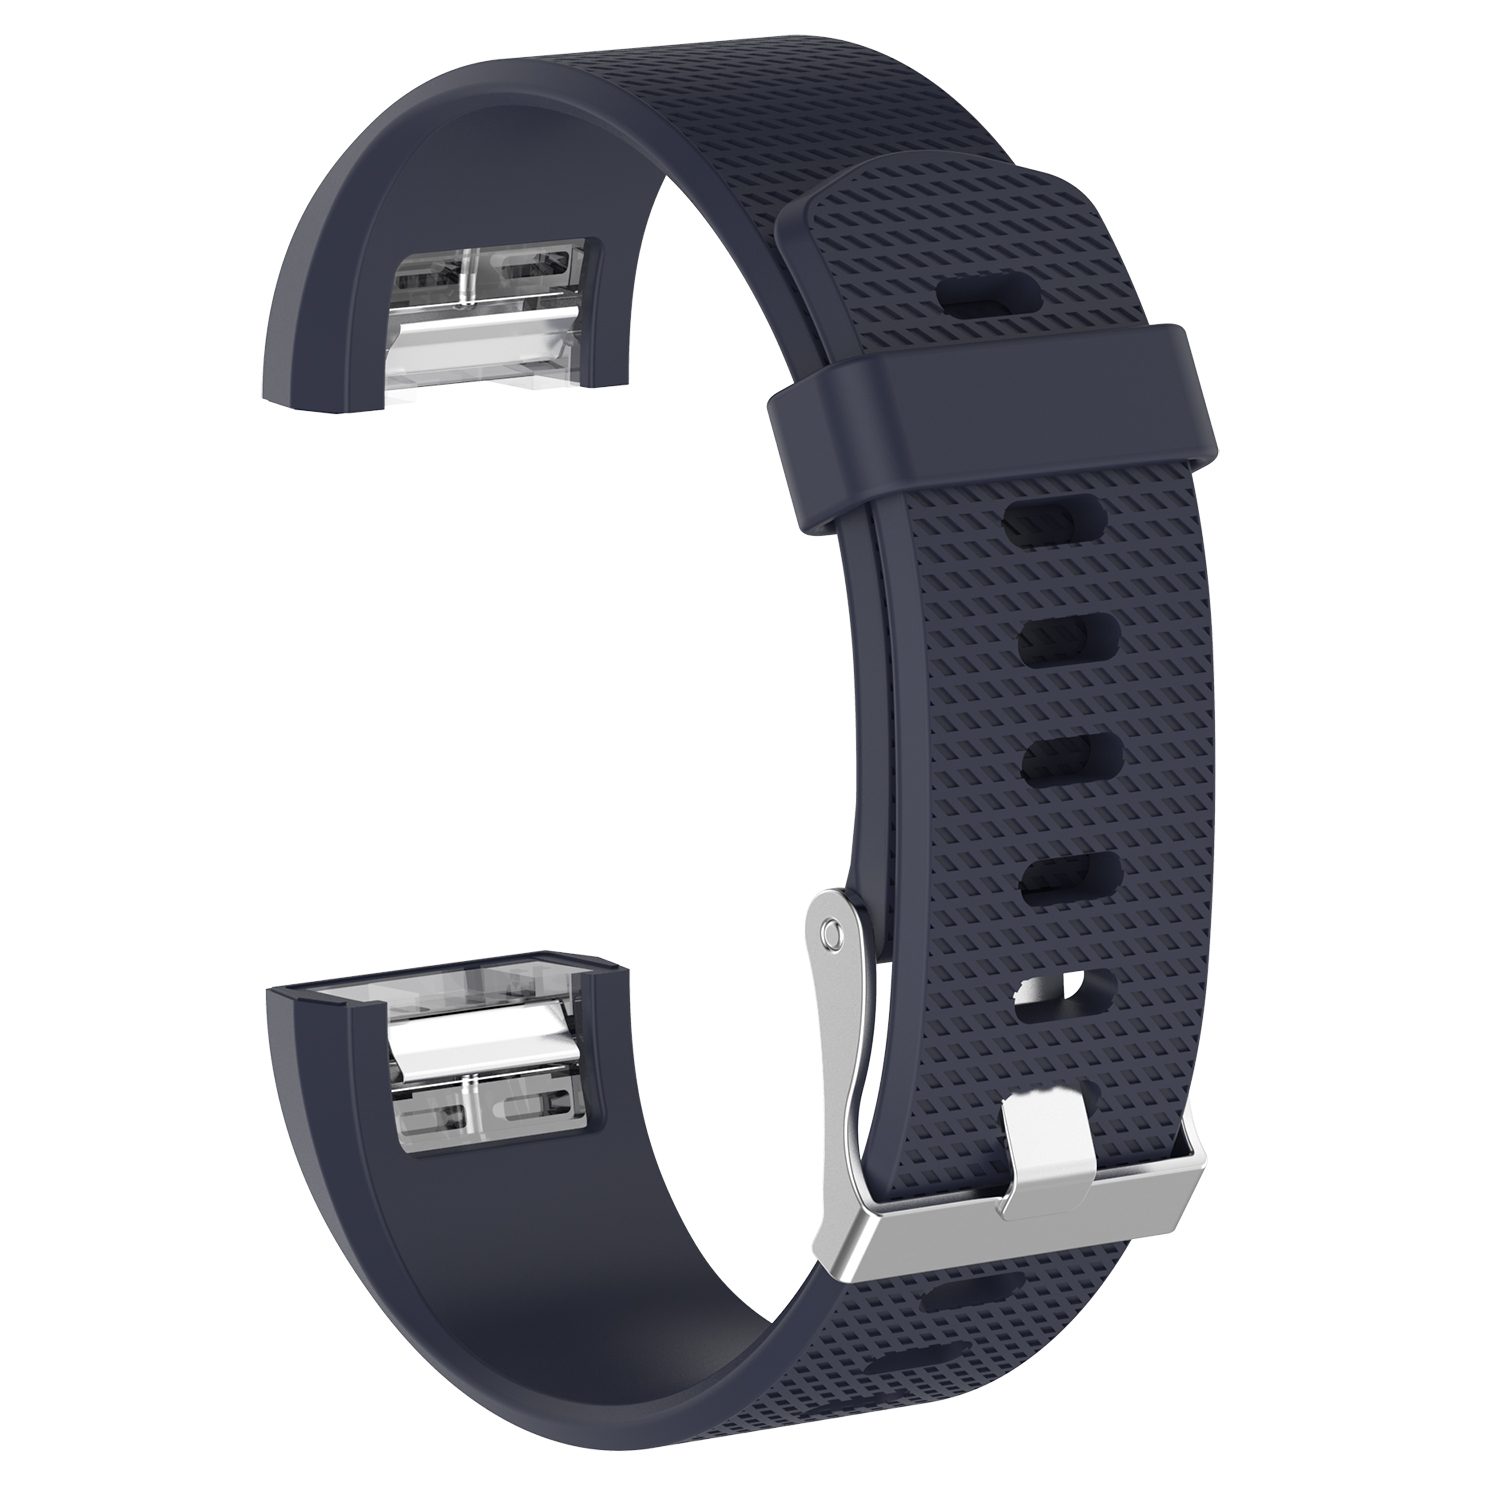 Replacement-Silicone-Wristband-Watch-Strap-Bands-Bracelet-For-Fitbit-Charge-2 thumbnail 26